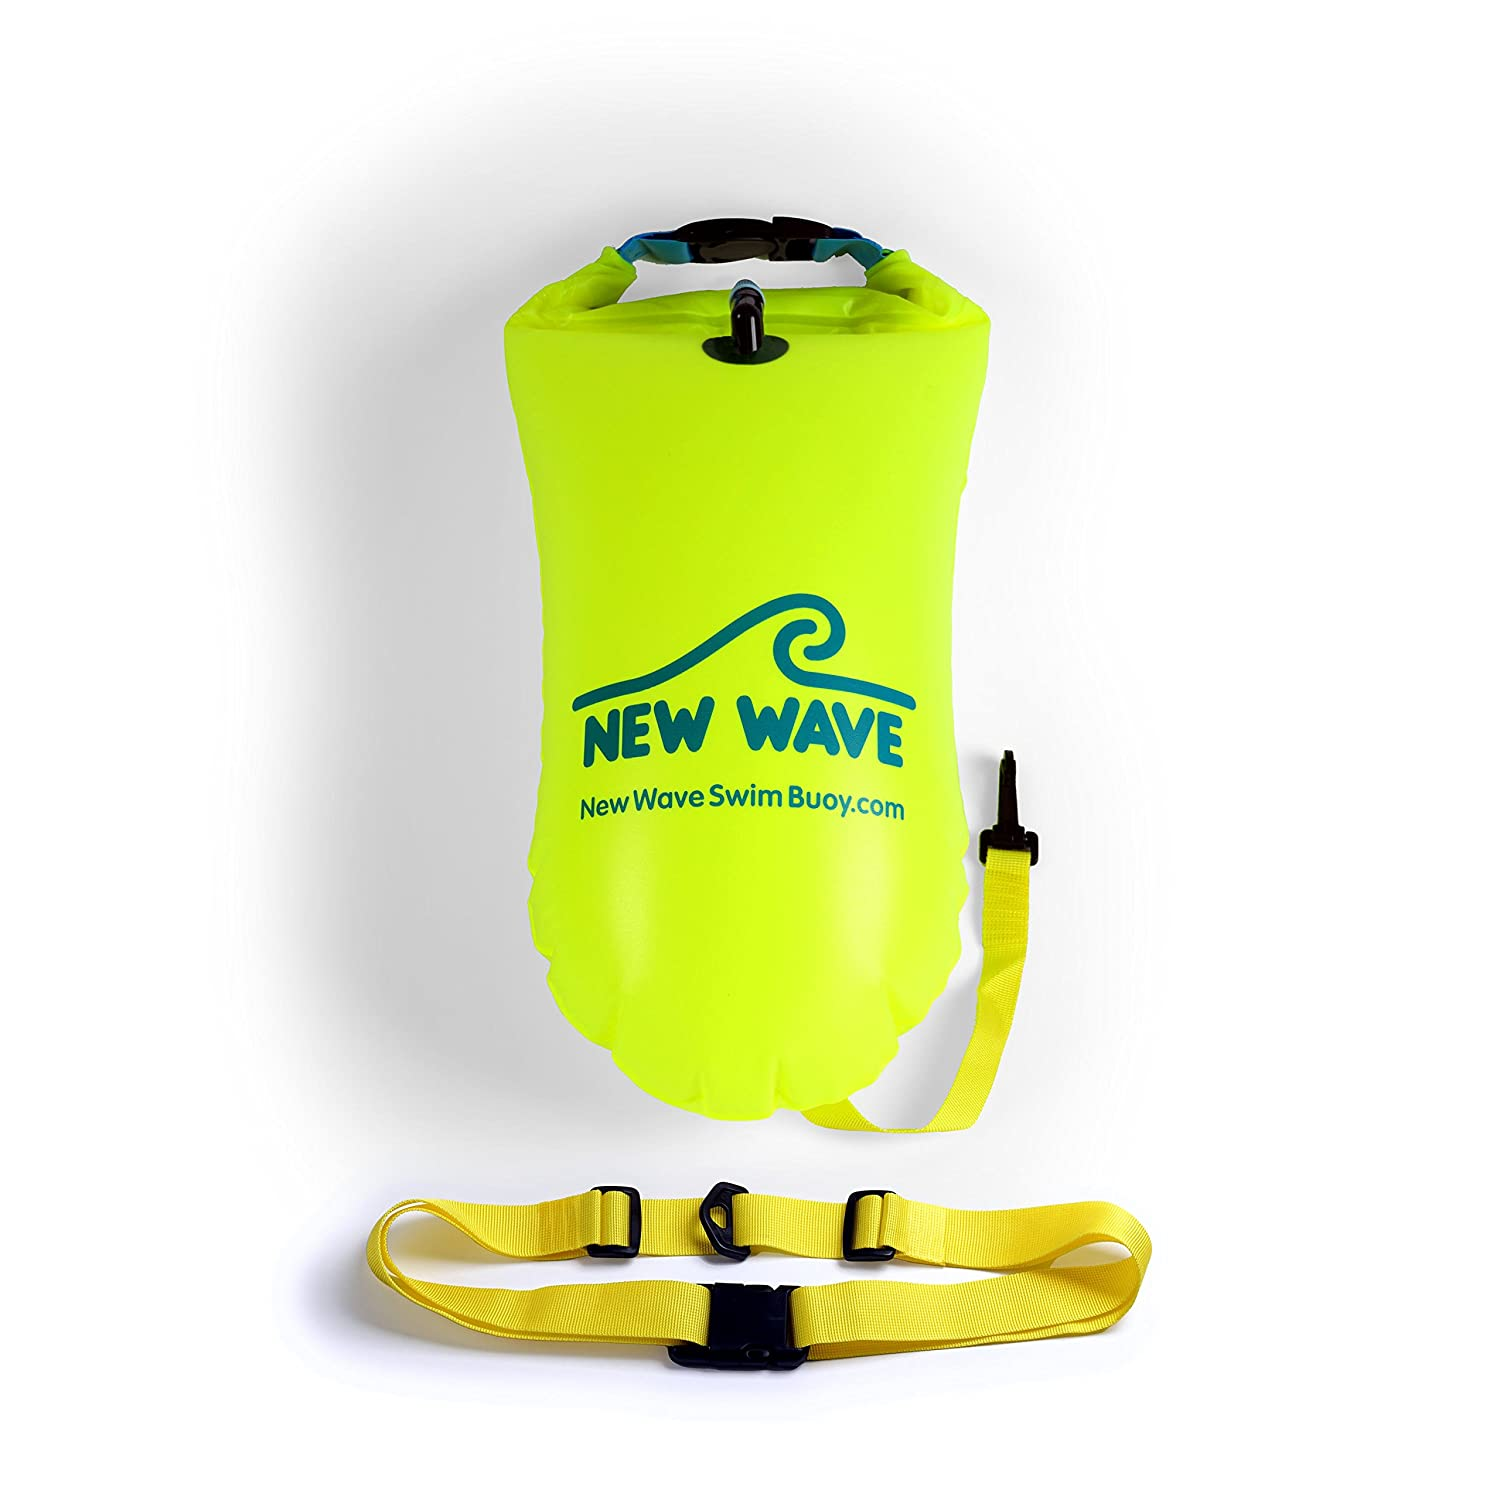 dc0cb418f Amazon.com : New Wave Swim Buoy for Open Water Swimmers and Triathletes -  Light and Visible Float for Safe Training and Racing (Neon Green PVC  Medium-15L) ...